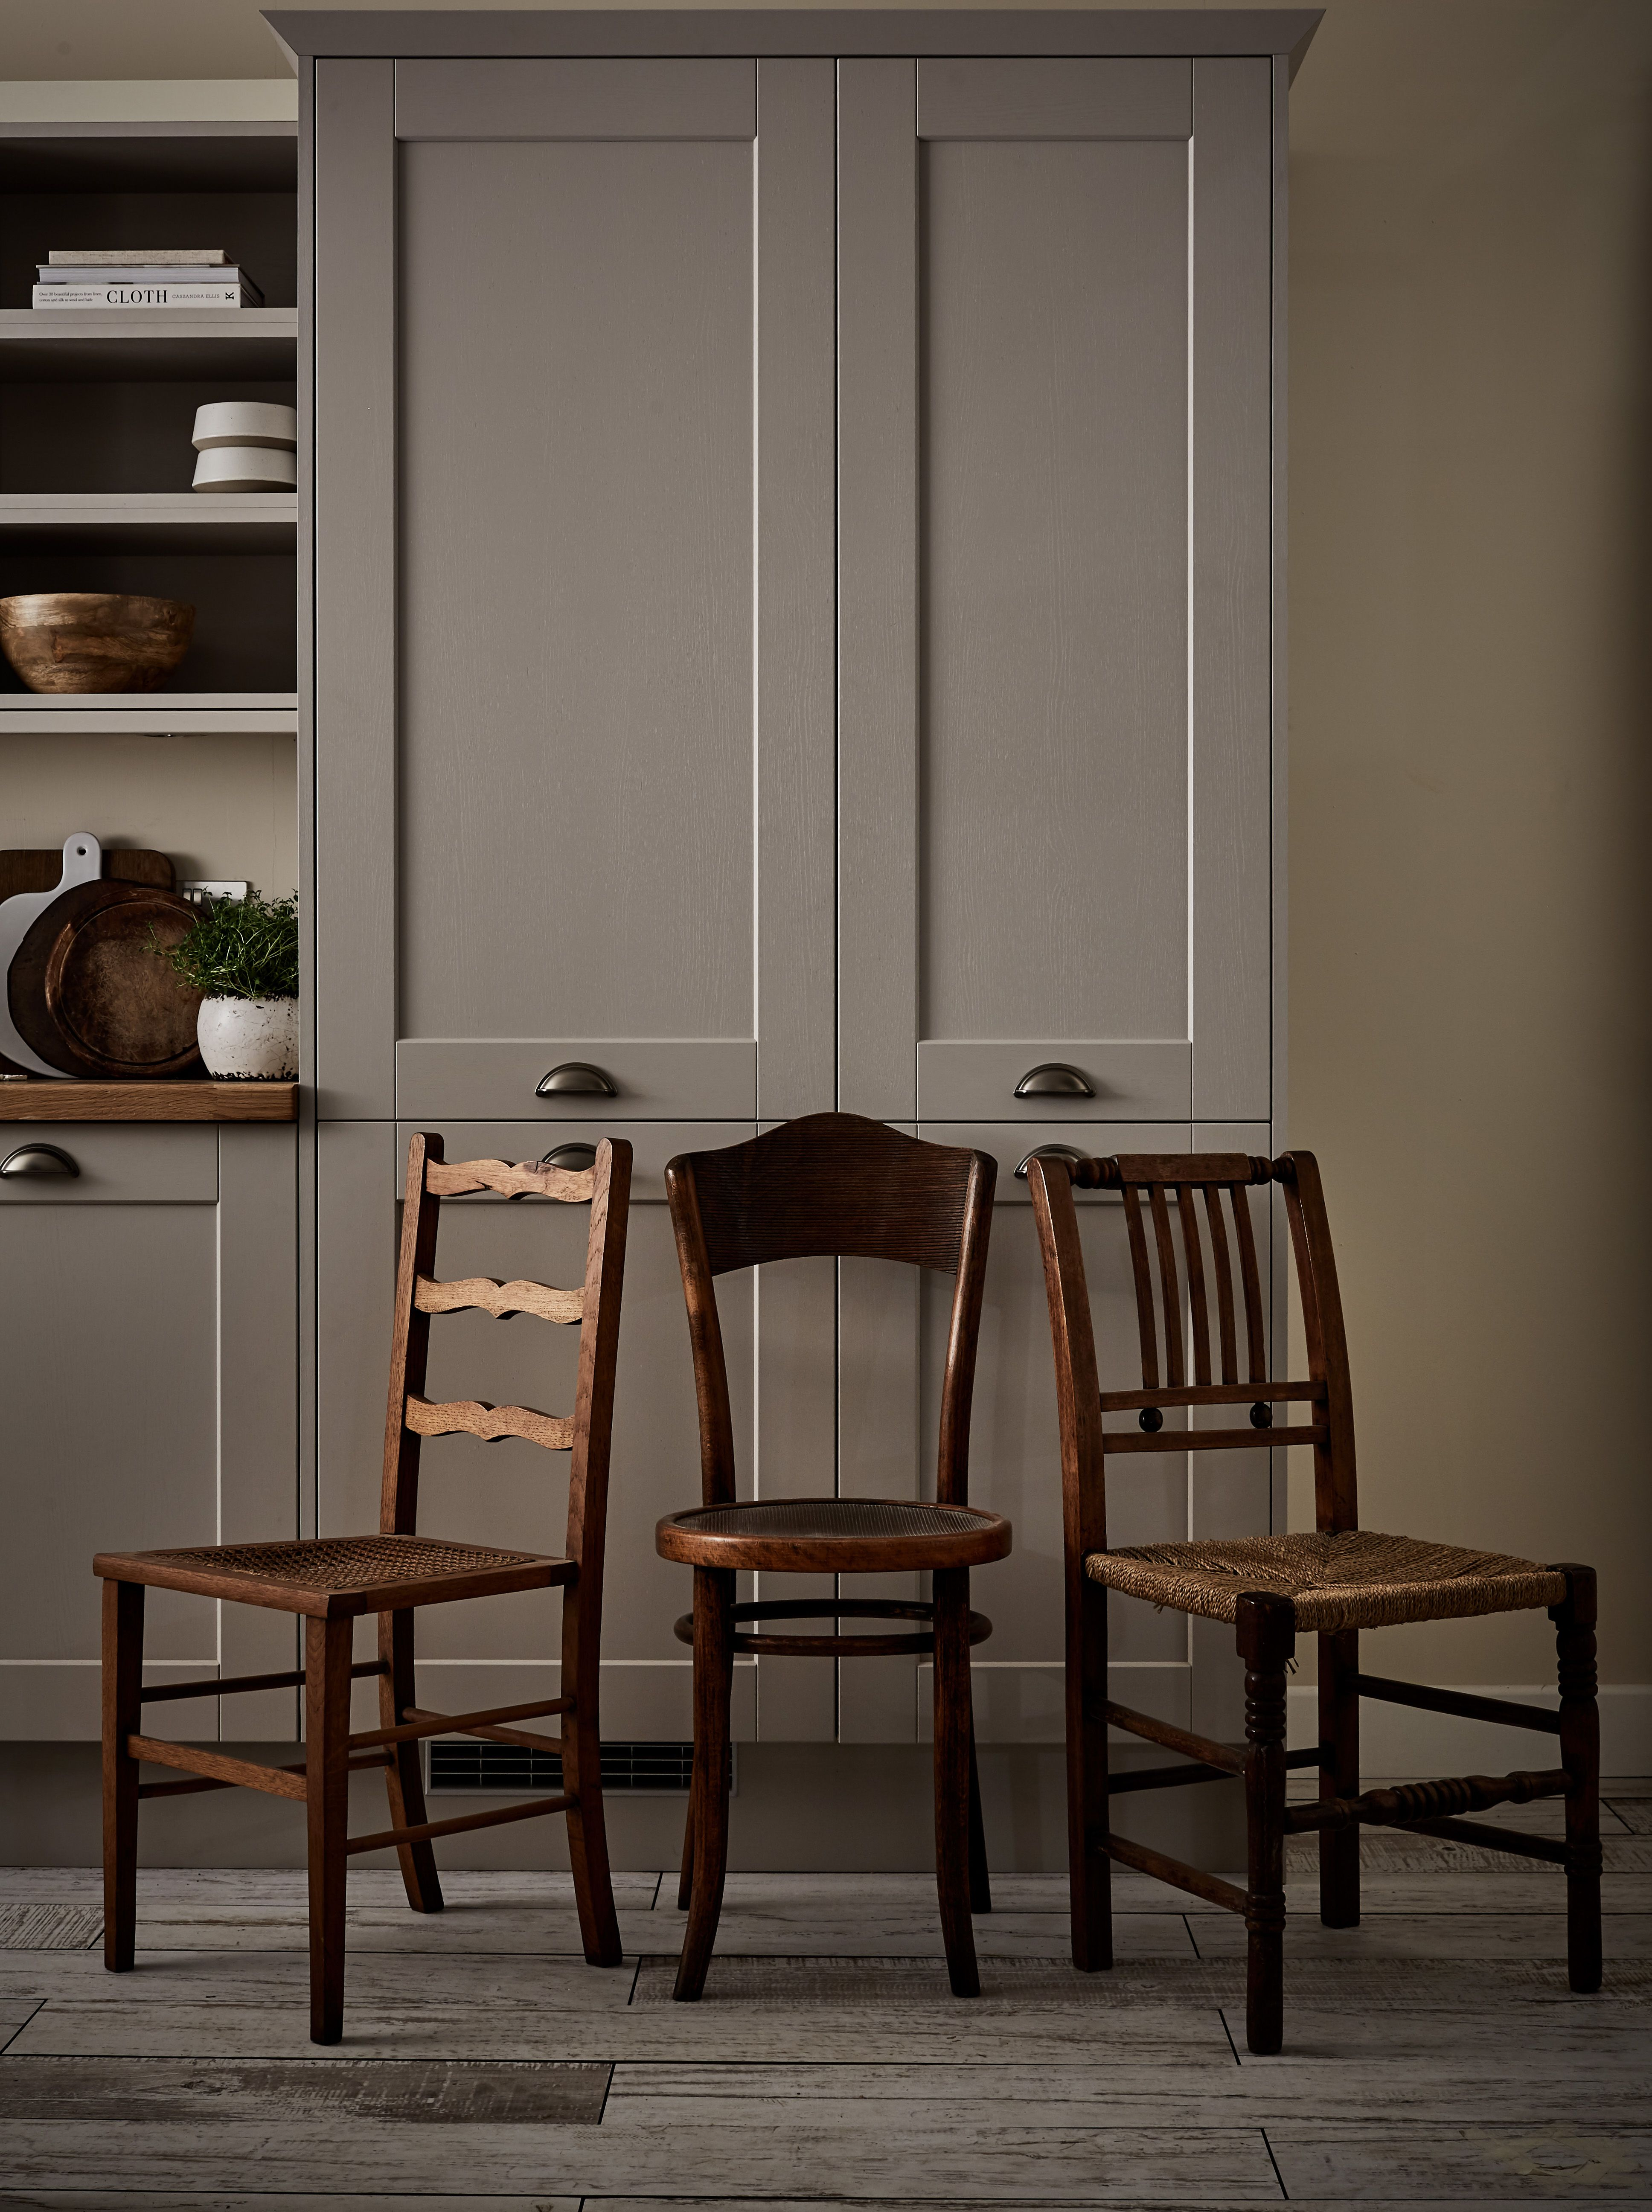 mix and match reclaimed chairs in similar tones to complete the burford grained stone kitchens are beautiful in any home